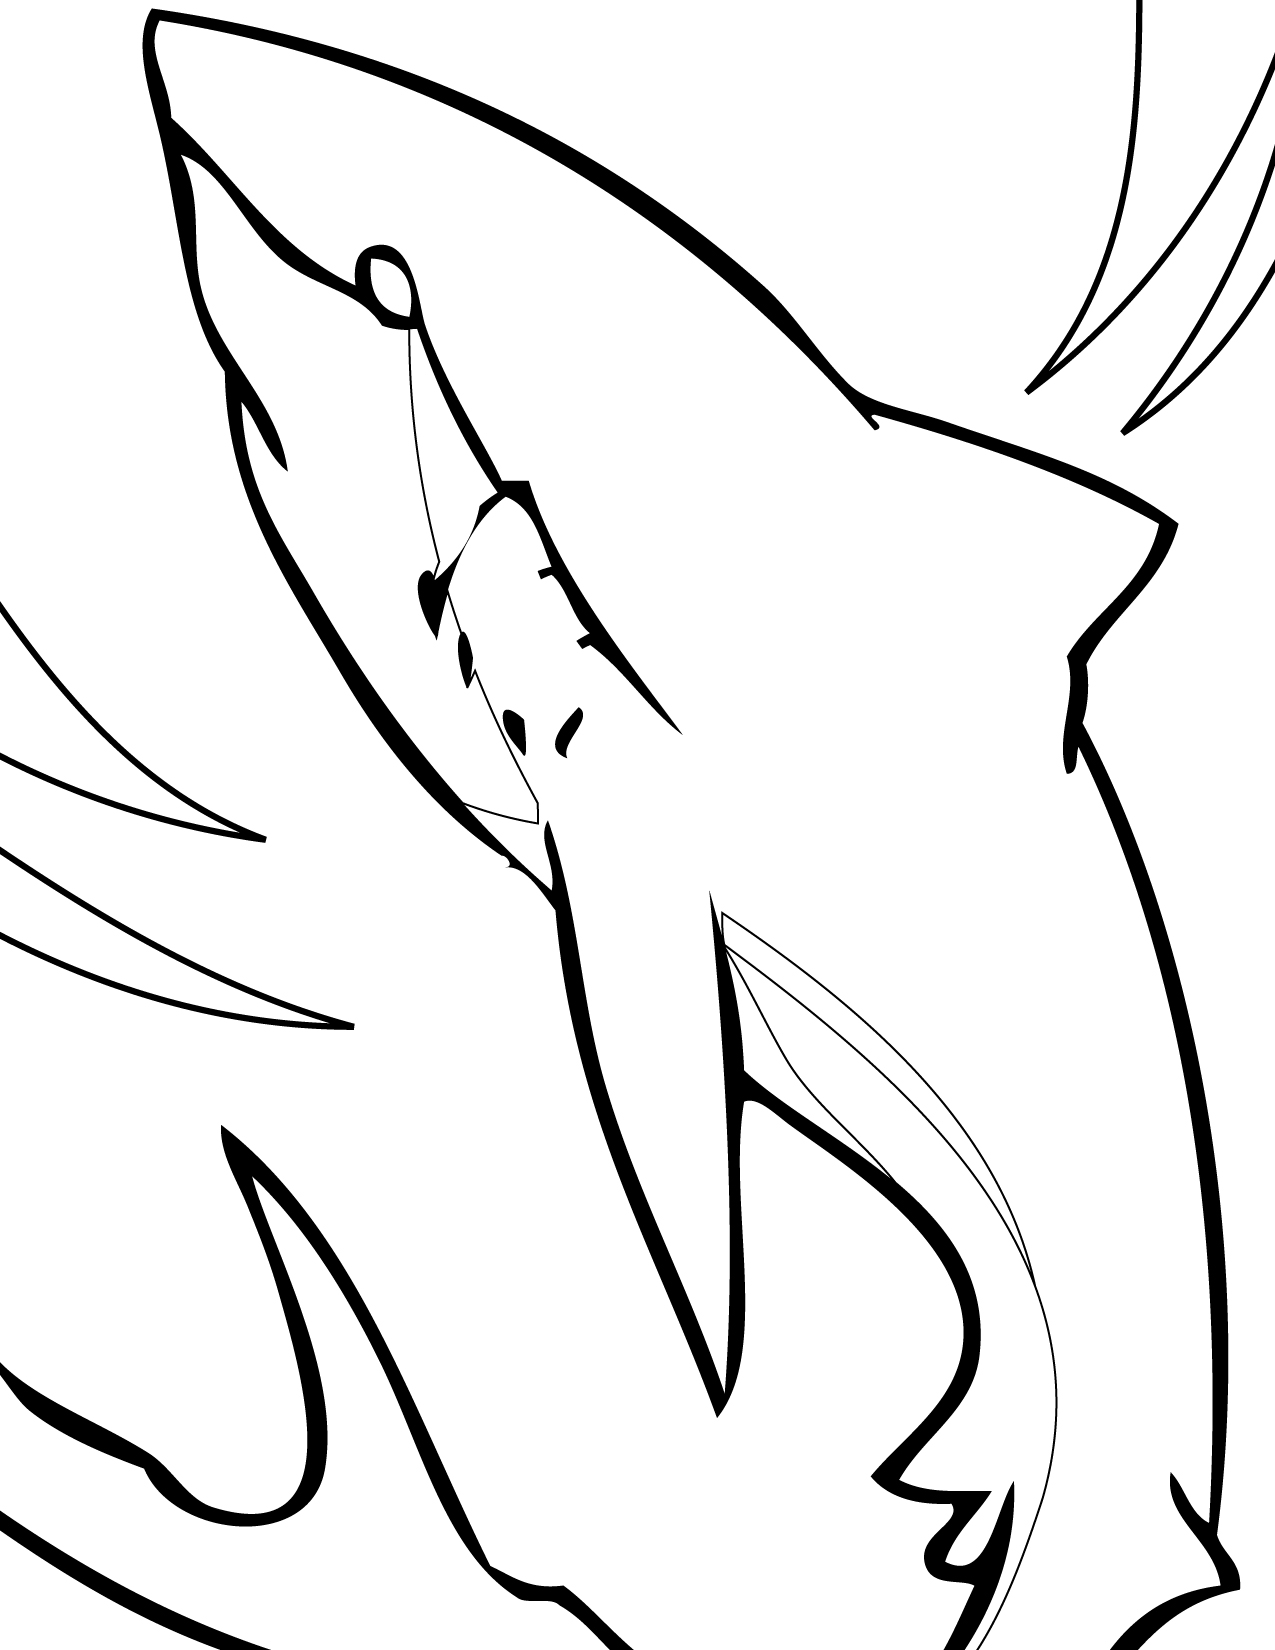 great white shark coloring page great white shark coloring pages to download and print for great coloring white page shark